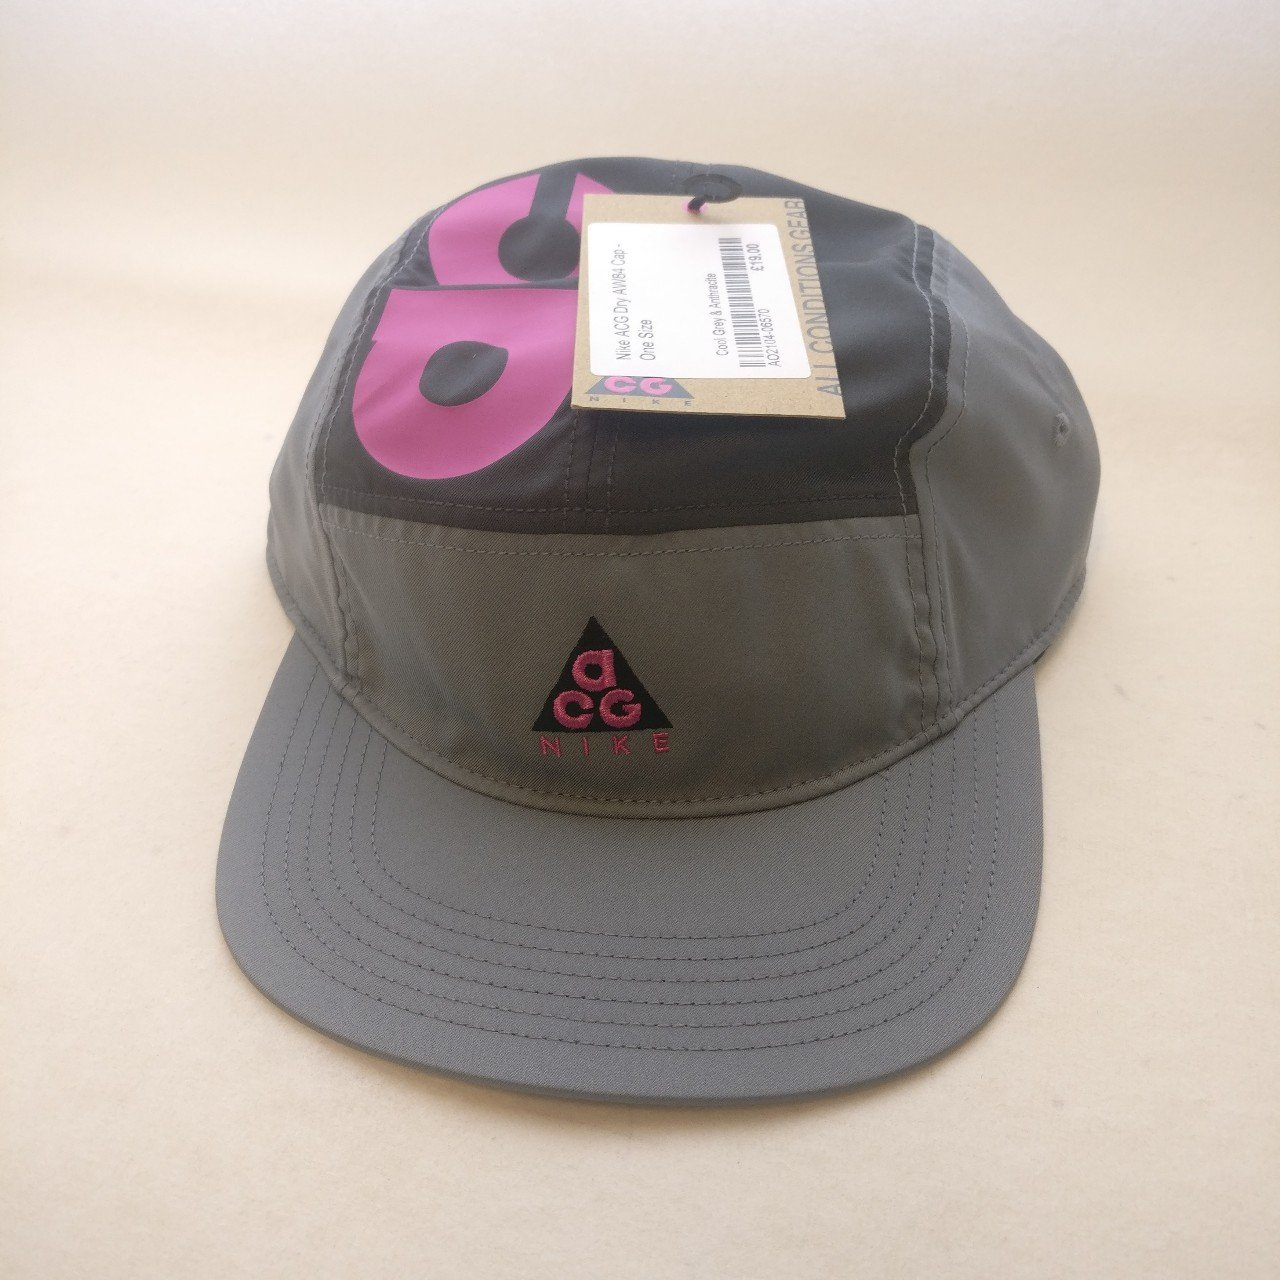 9d889d5a26b Nike ACG 2018 five panel cap Brand new with tags